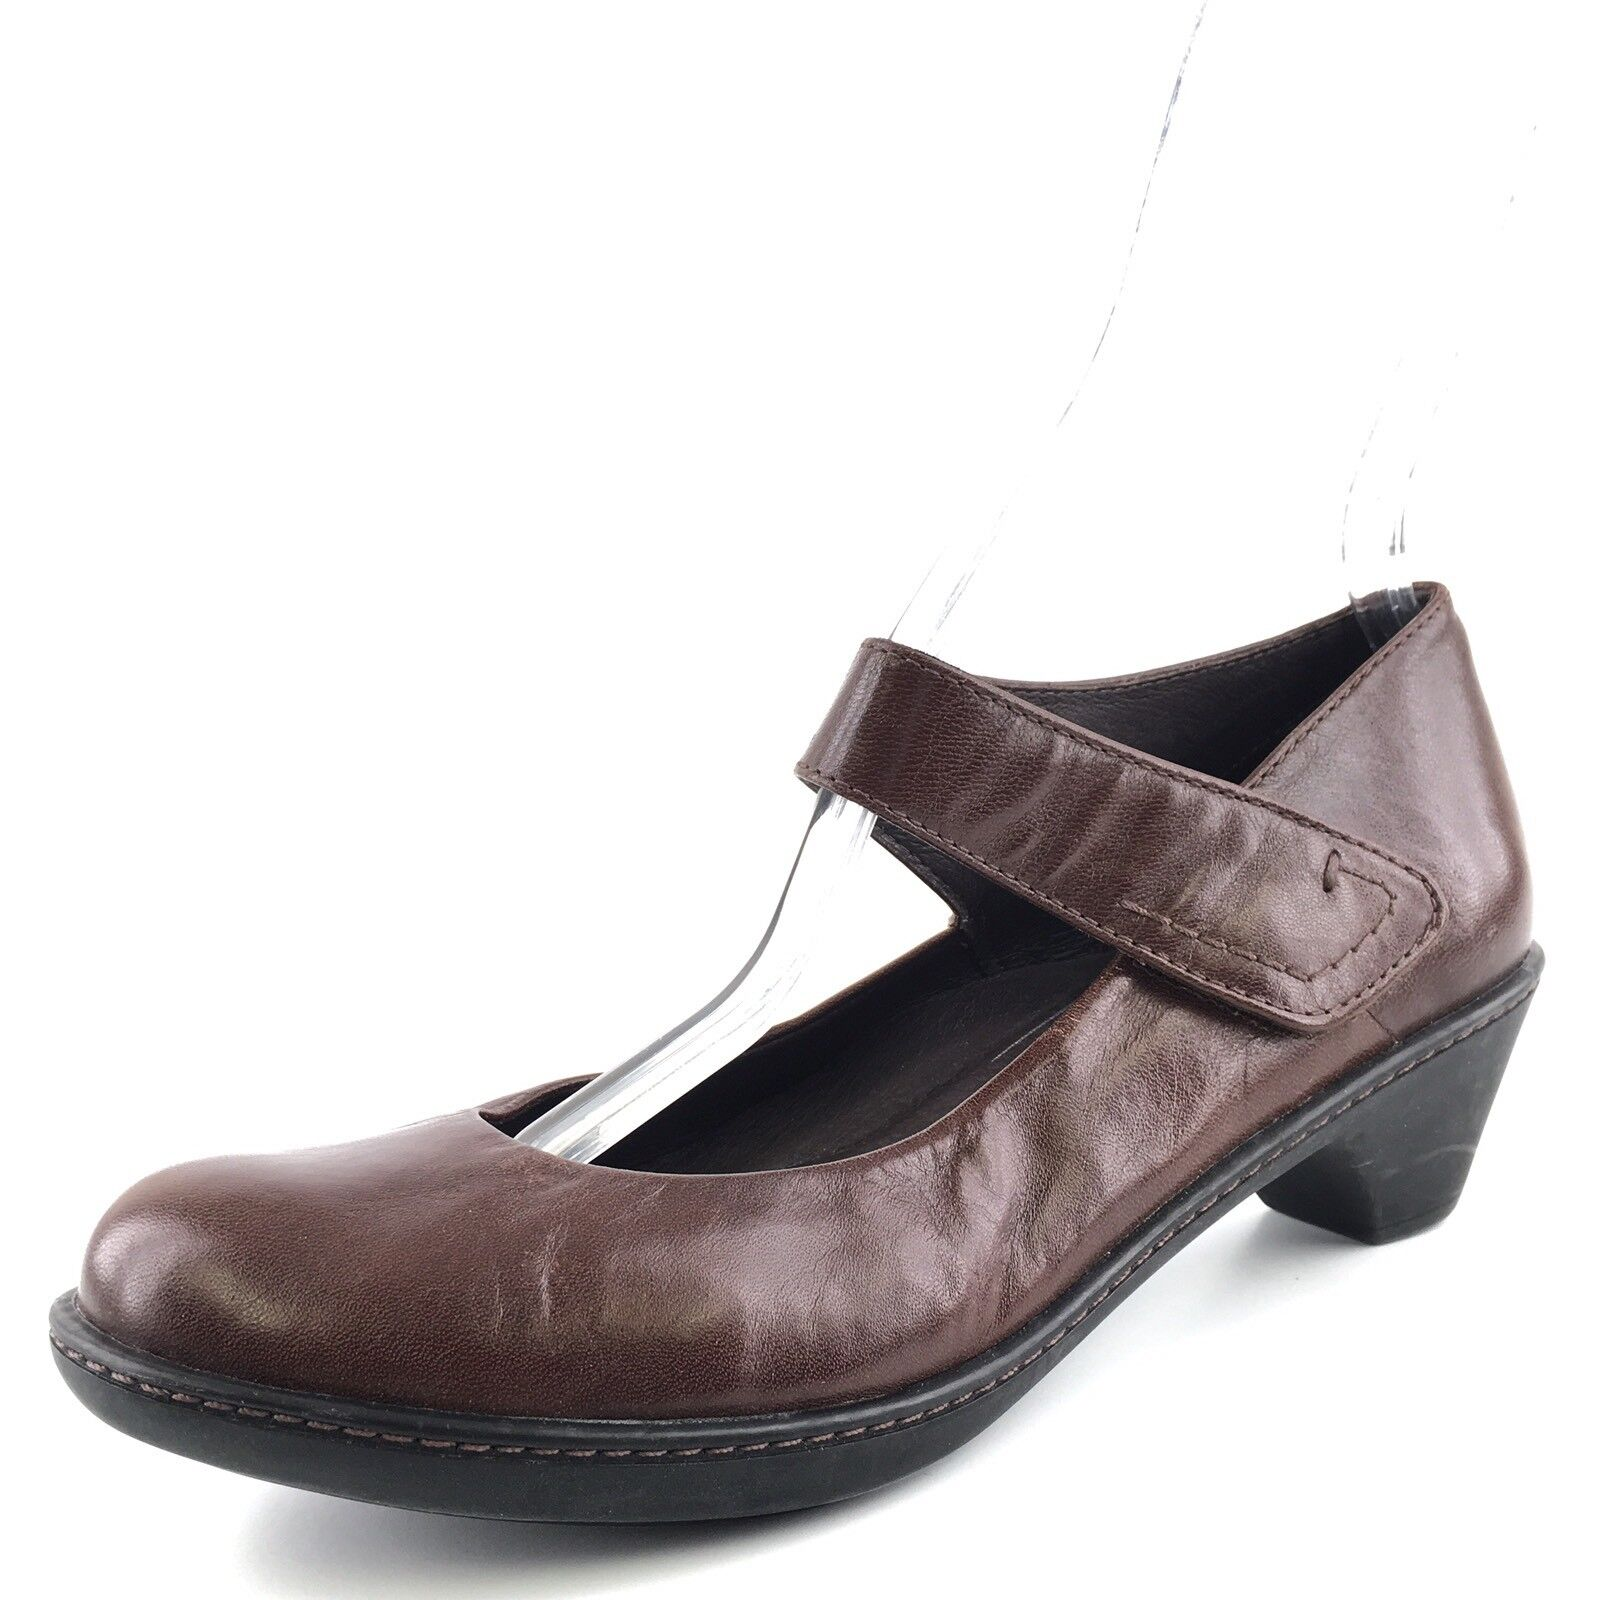 Dansko Adelle Classic Brown Leather Mary Jane Wedge shoes Womens Size 38 M